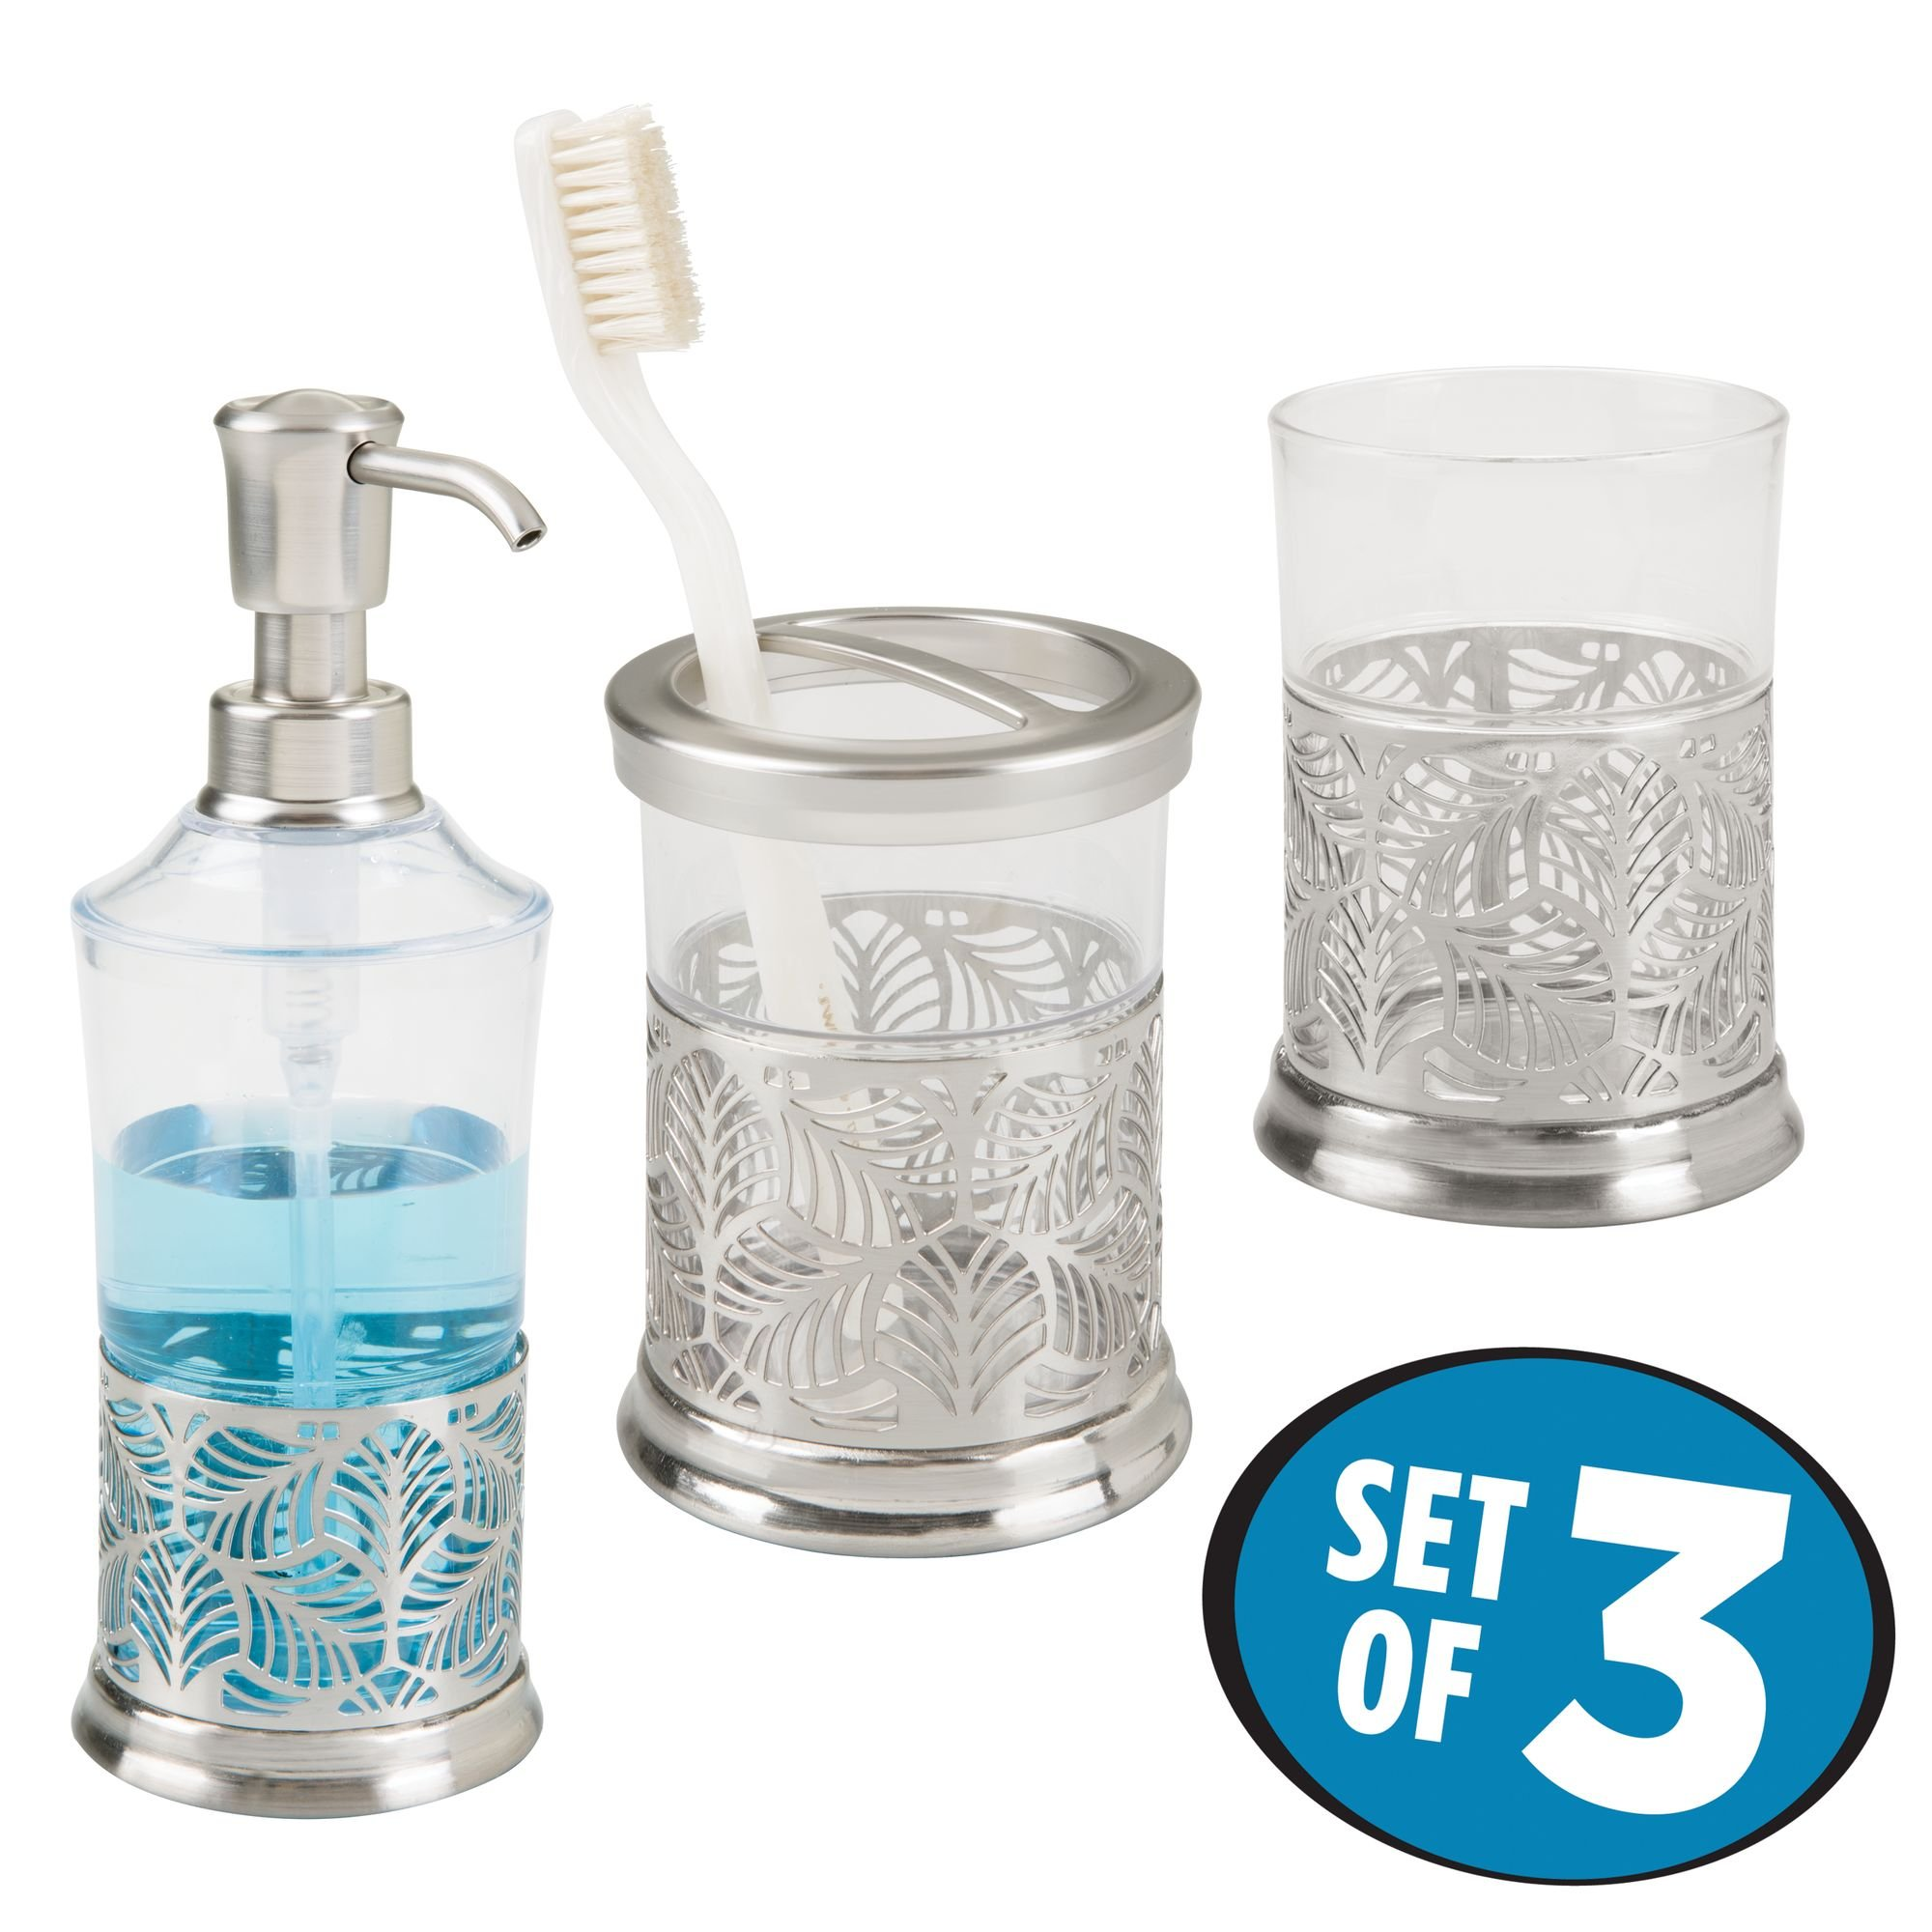 mDesign Decorative Bath Accessory Set with Leaf Design for Bathroom Vanity Countertops and Sinks, Includes Hand Soap Dispenser, Toothbrush Holder and Tumbler - Set of 3, Clear/Brushed